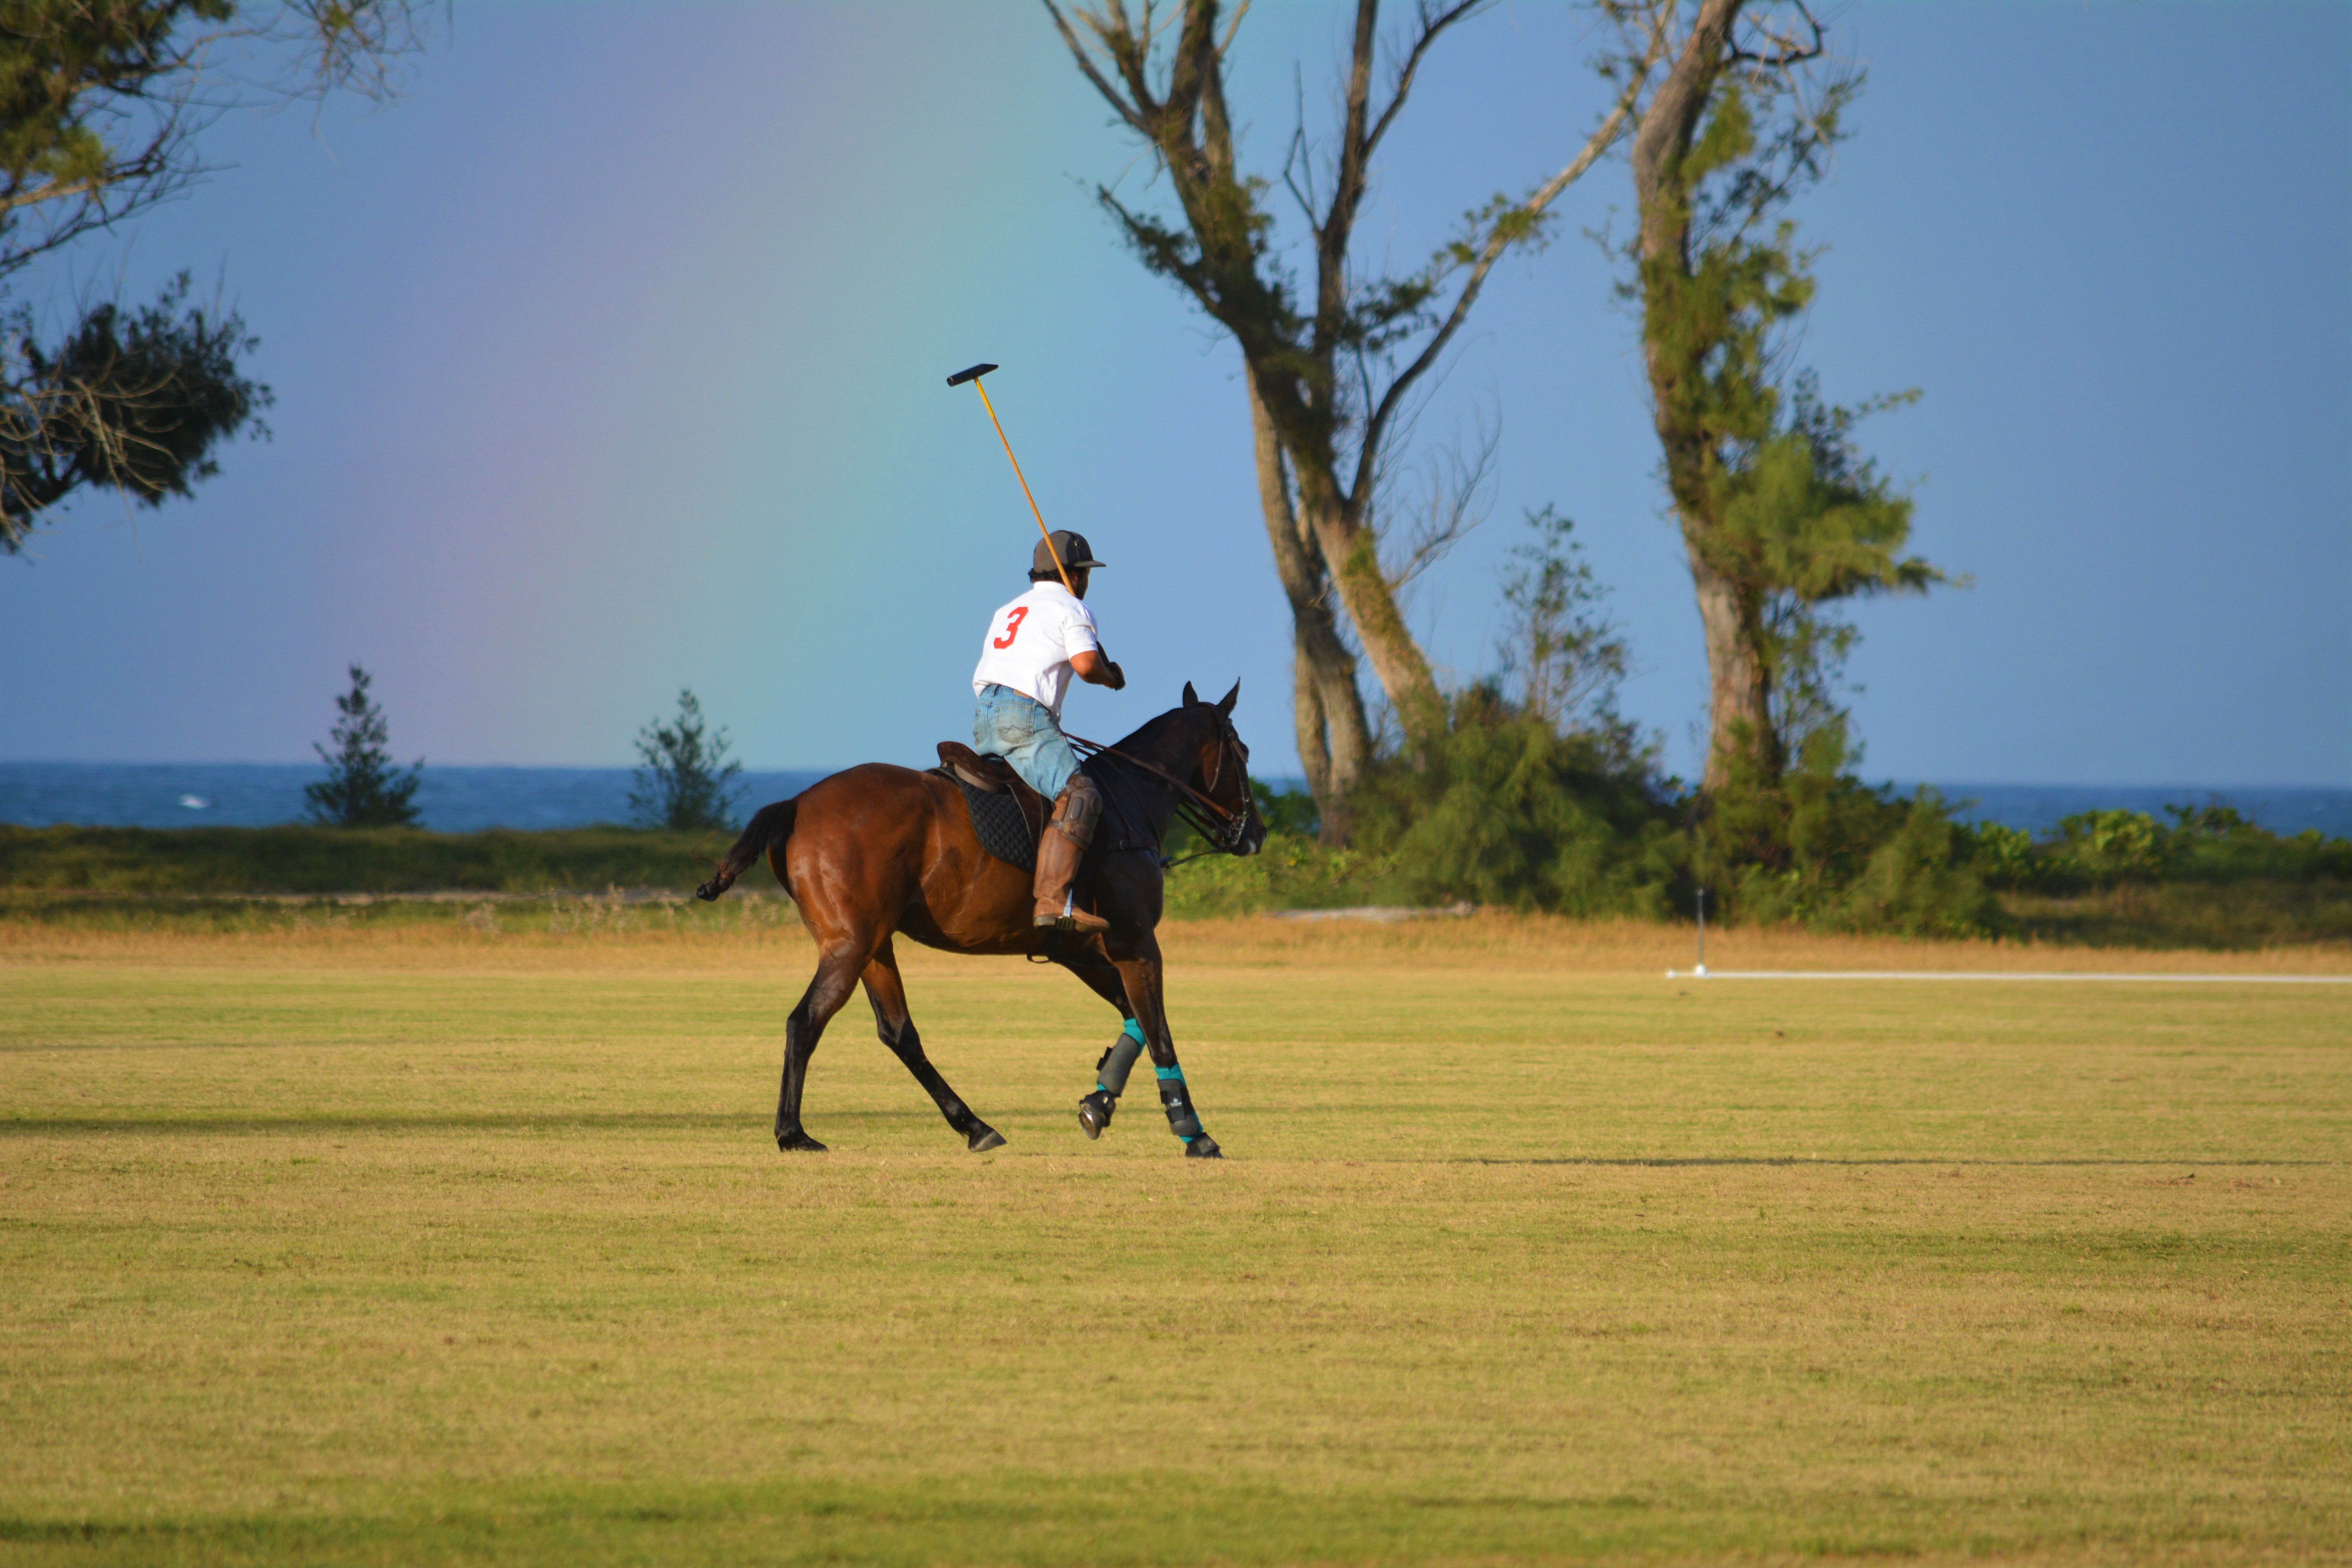 Horses, Mallets - The game of Polo